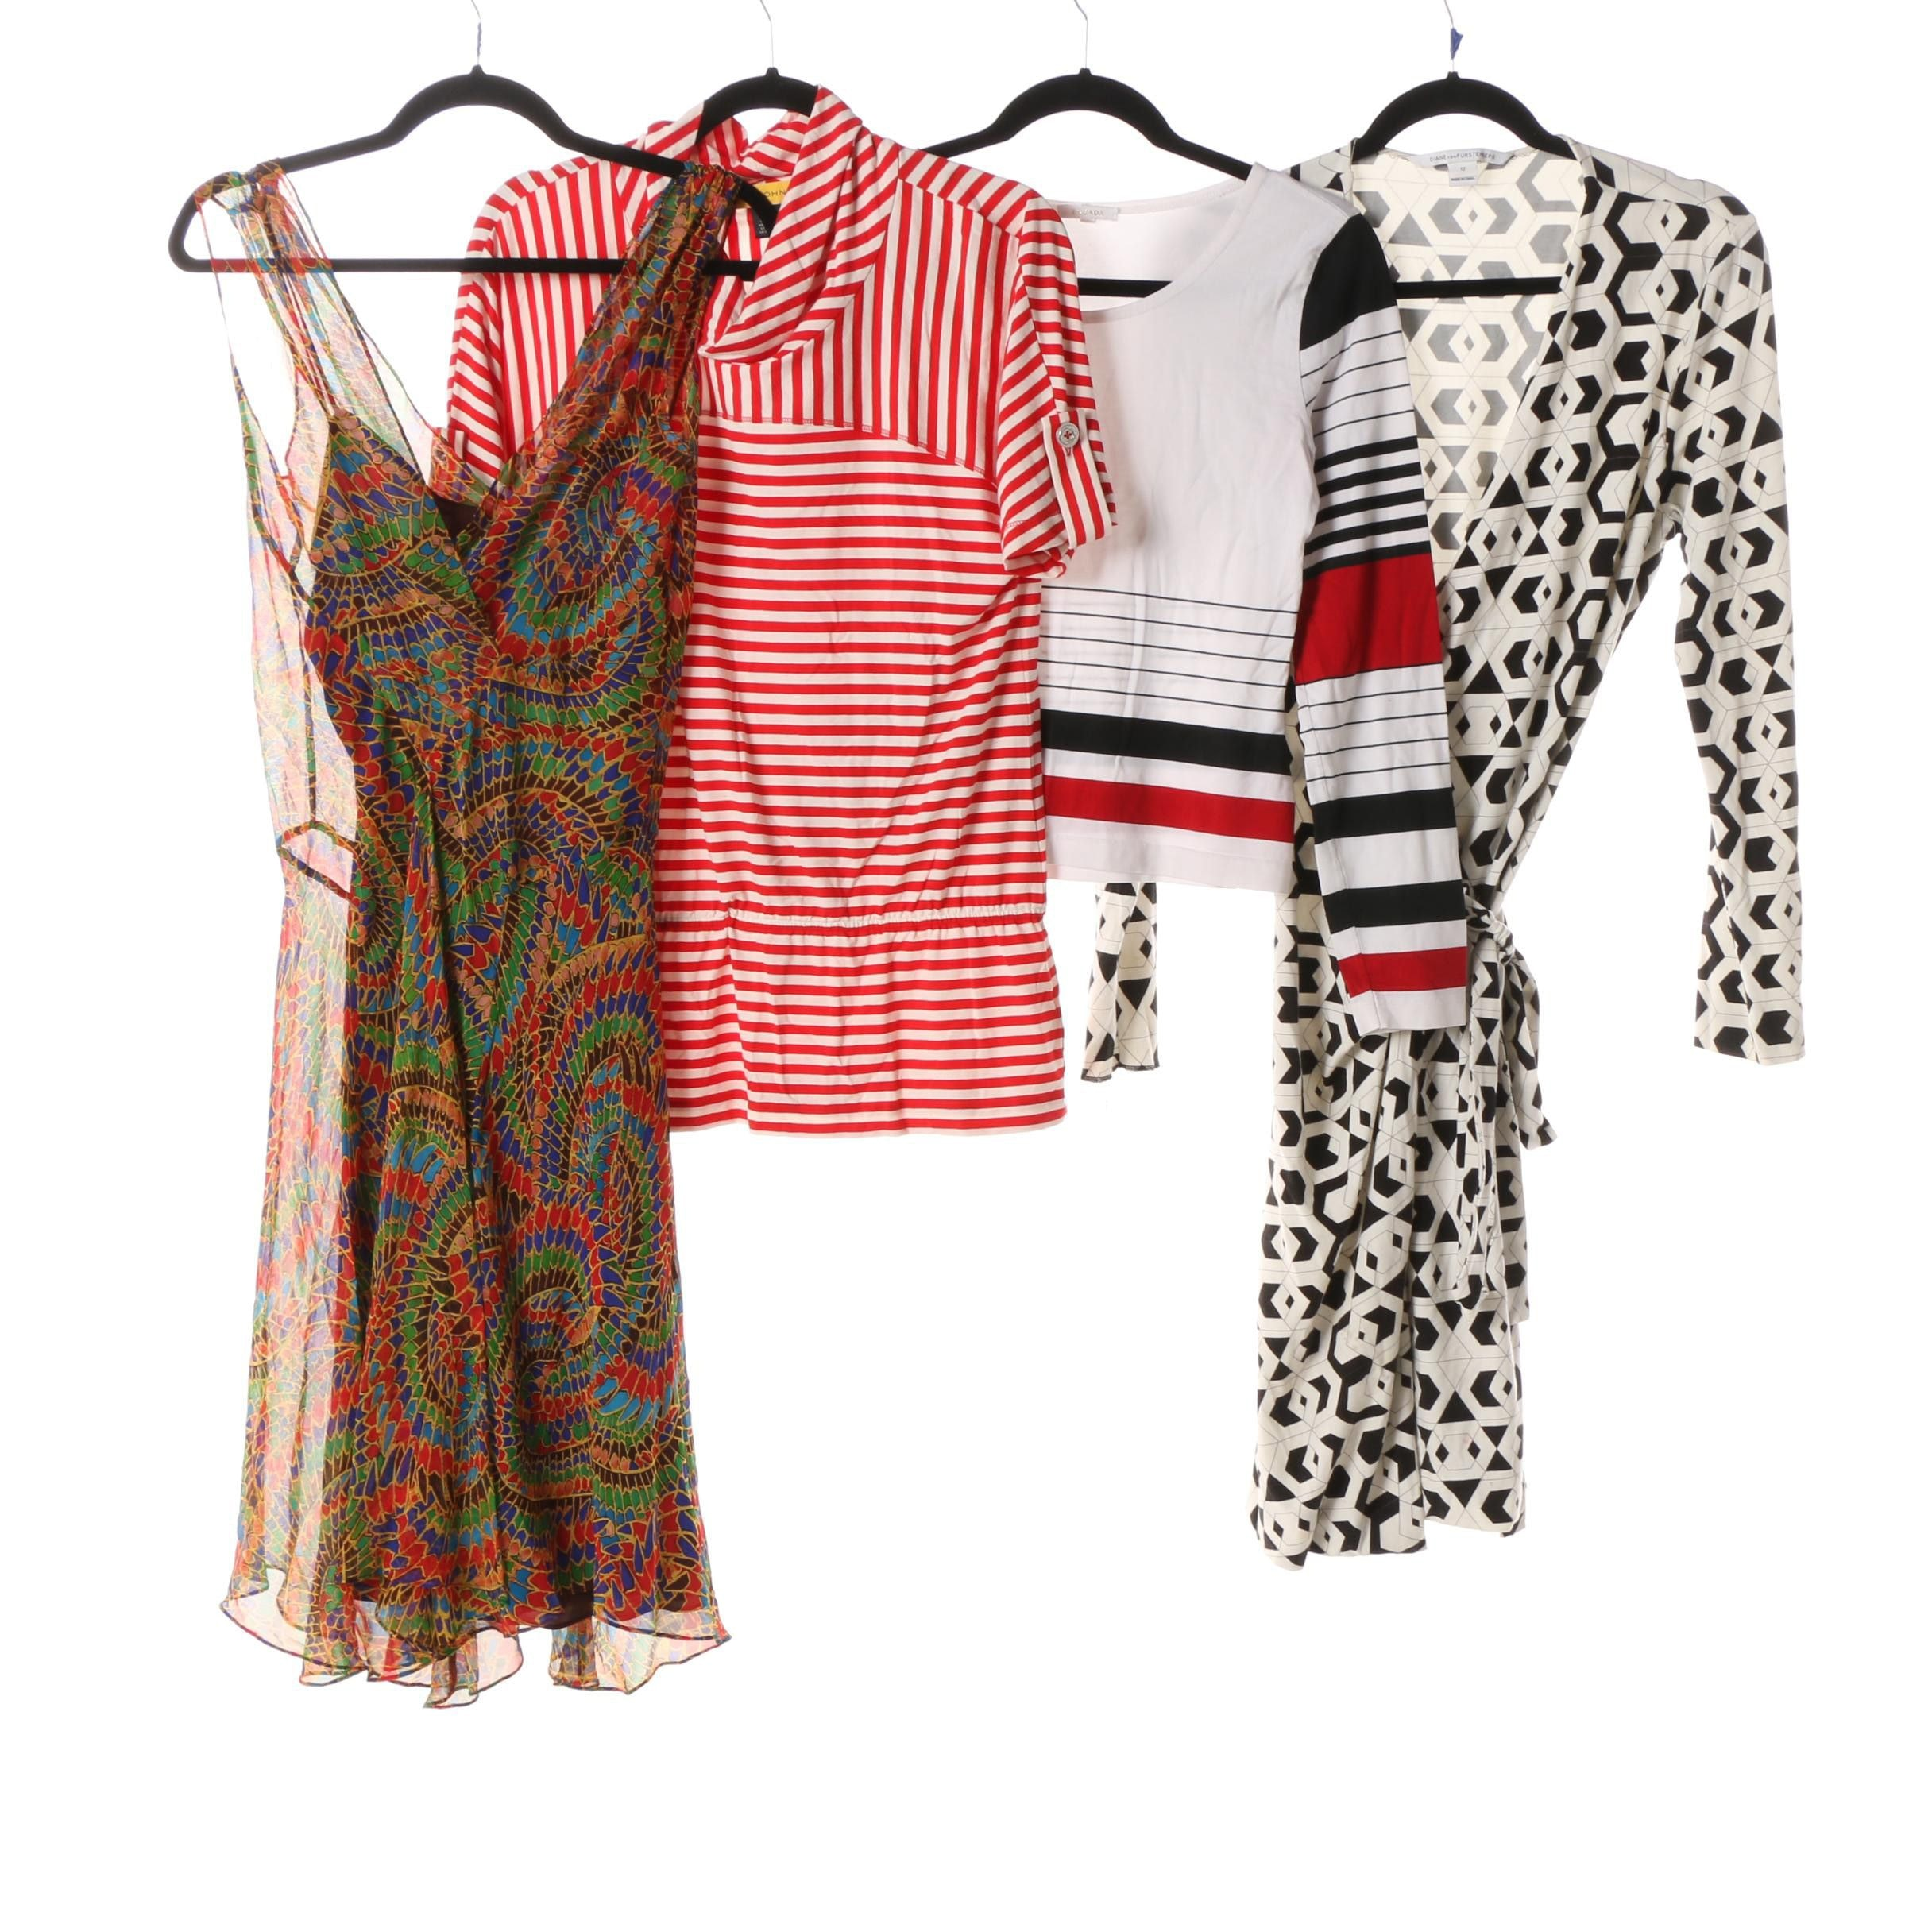 Women's Dresses and Tops including Diane von Furstenberg and St. John